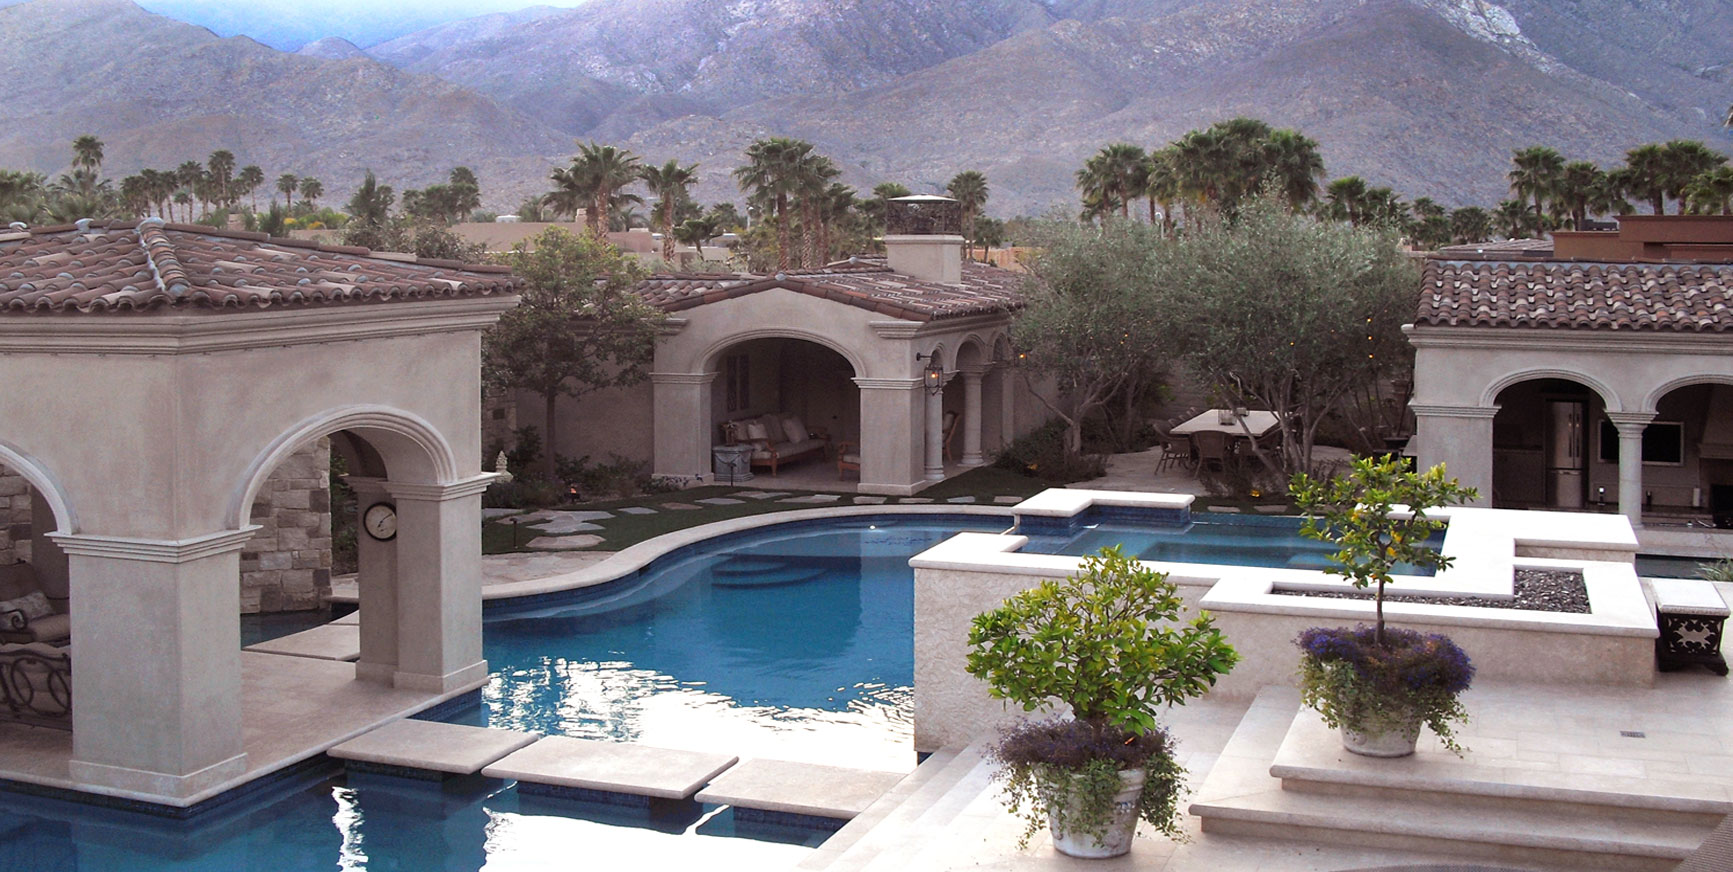 PALM SPRINGS DESERT RETREAT